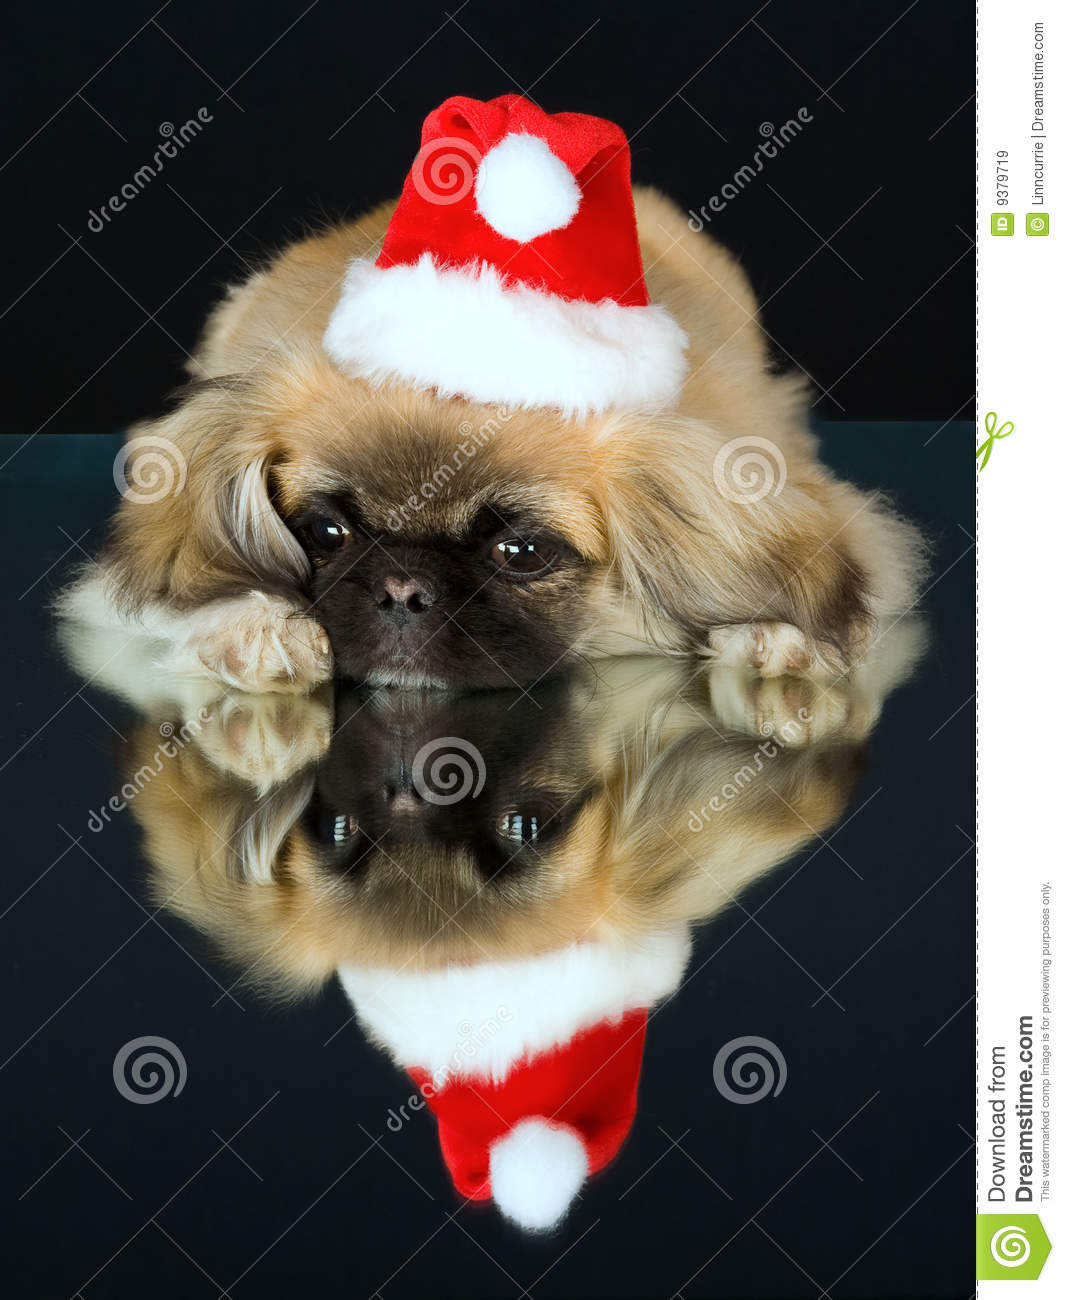 0f2ef493863dd Cute Pekingese puppy lying down on mirror wearing Santa hat with reflection  on black background